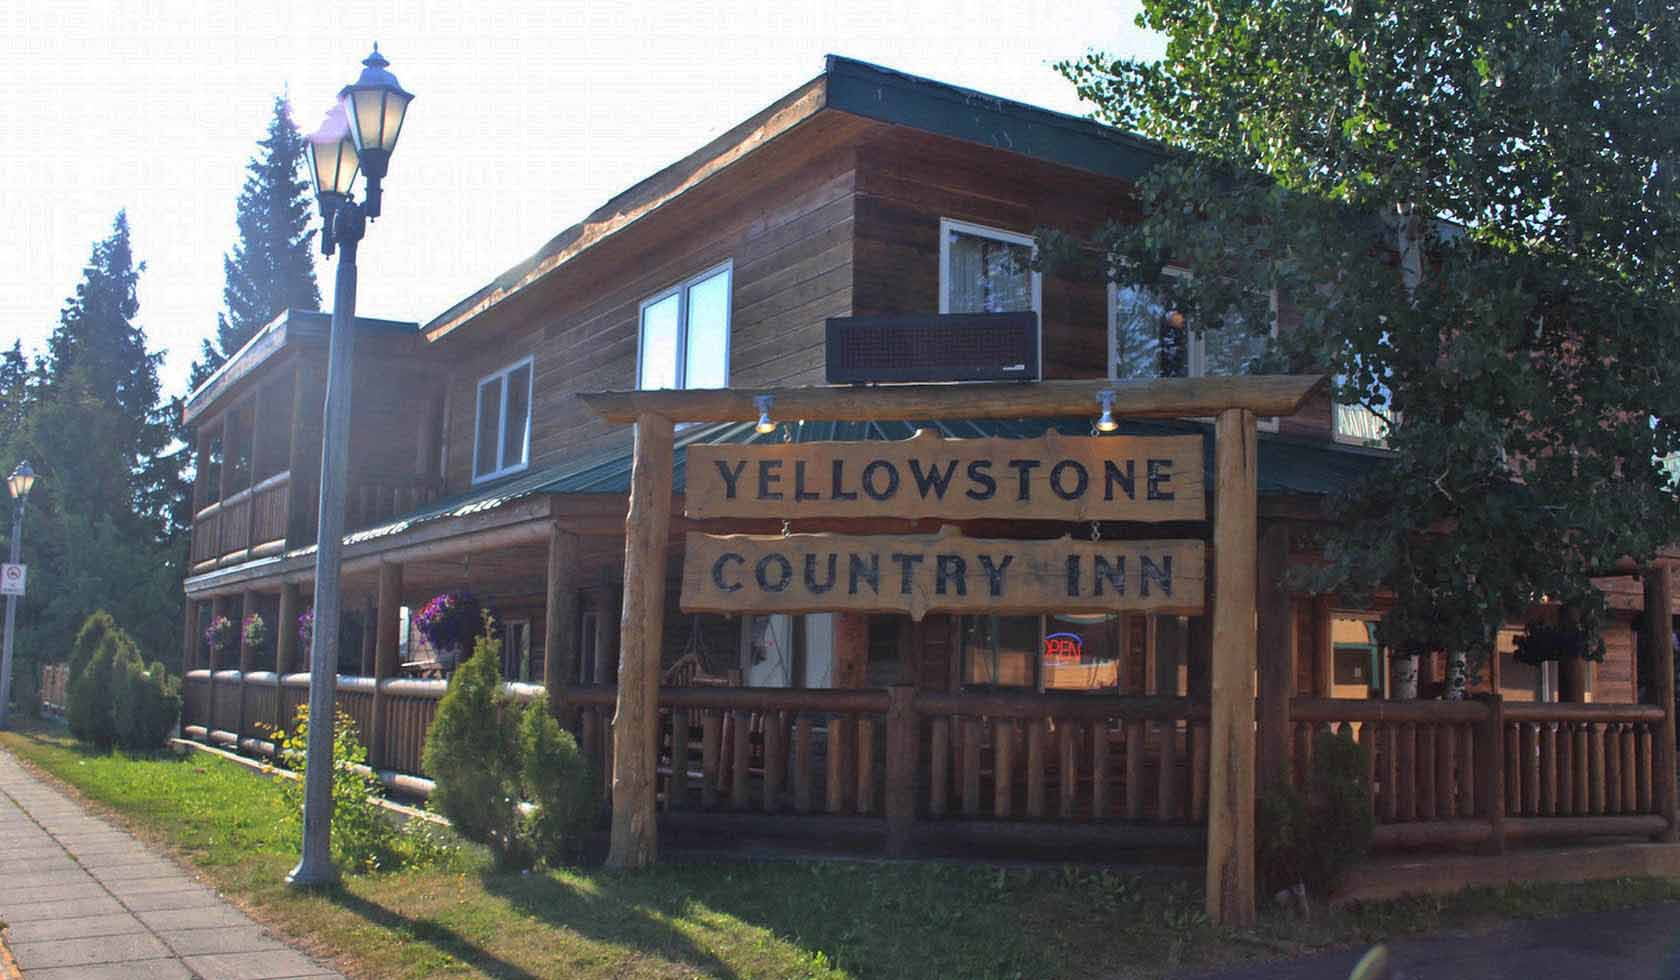 Yellowstone Country Inn profile image